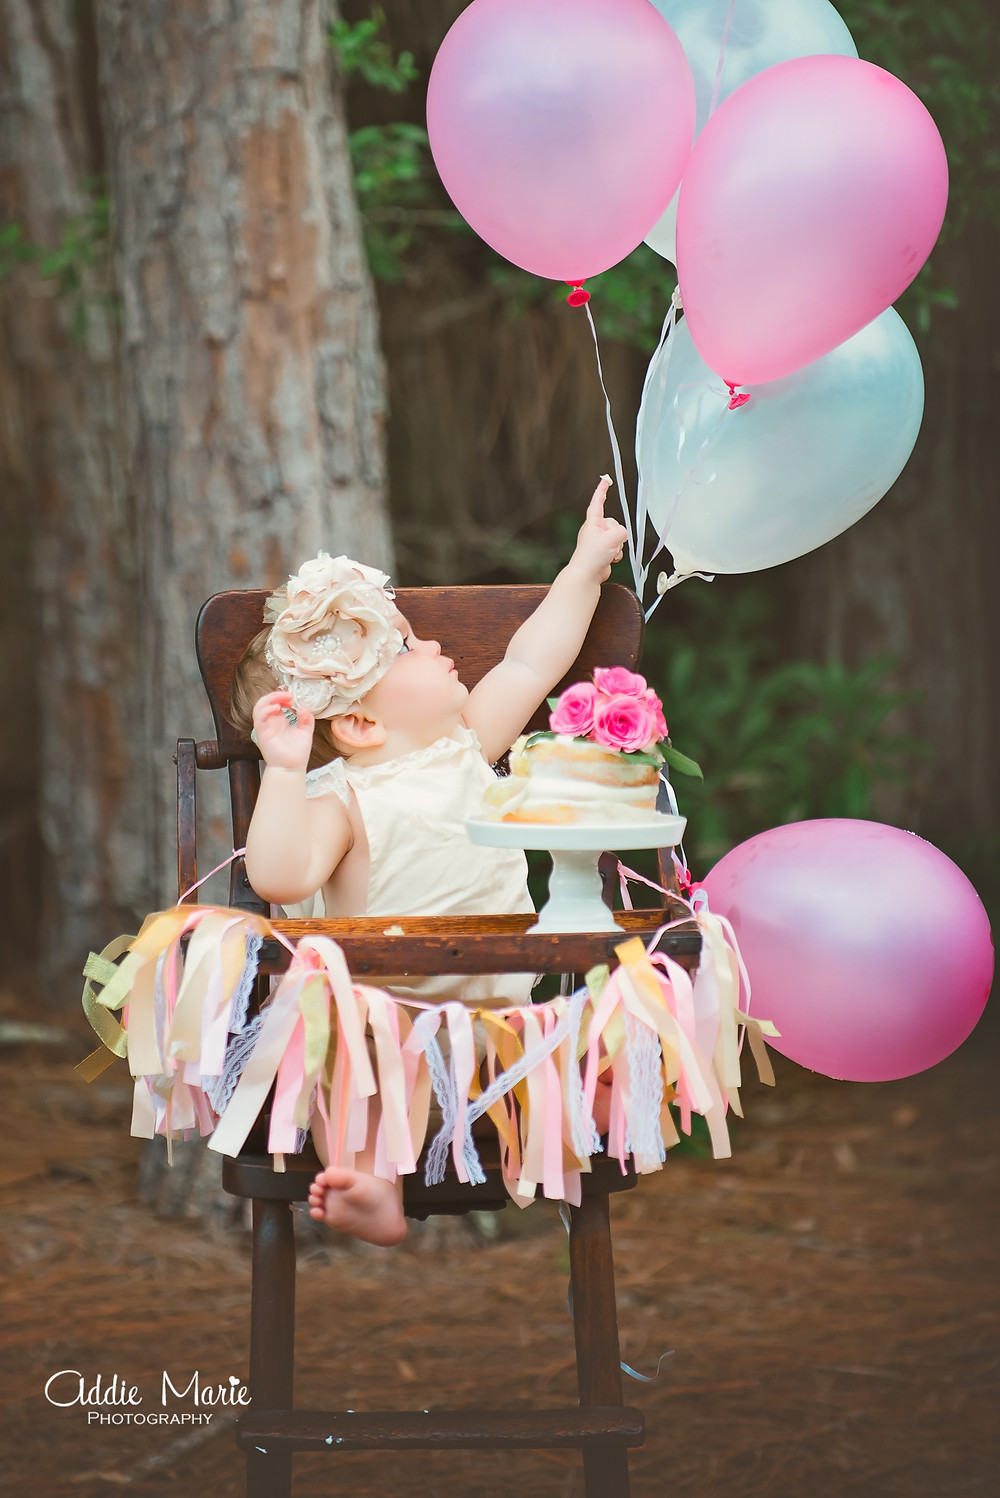 Outdoor Smash Cake - Vintage Romantic Photo shoot, field, flower tent, family session, Orlando Photographer, Addie Marie Photography